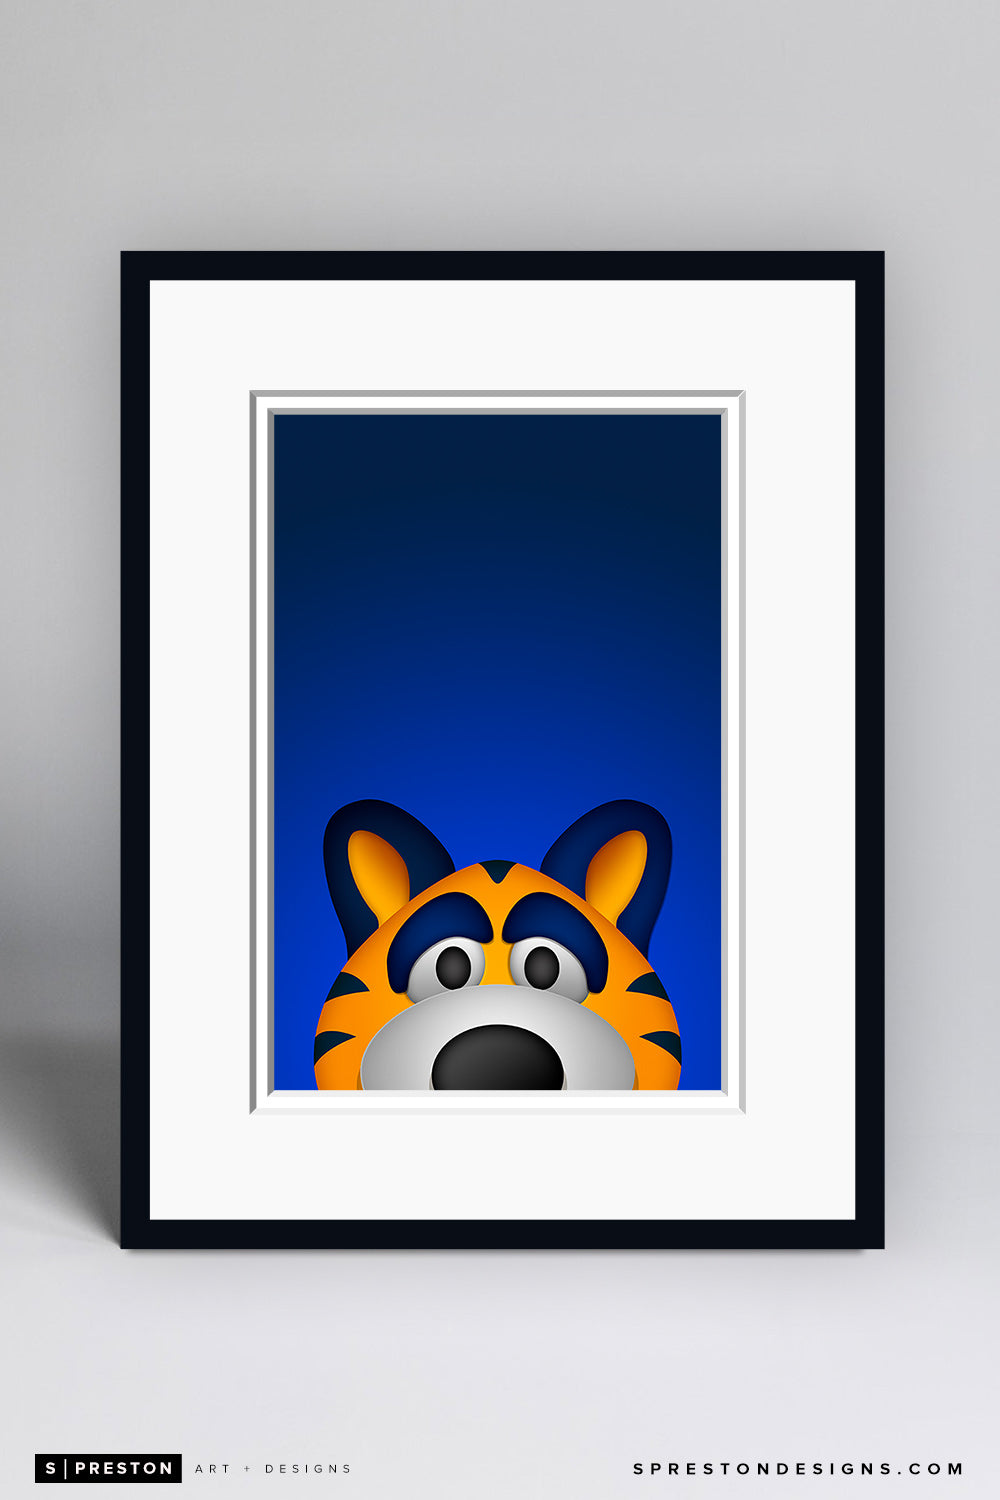 Minimalist Sabretooth - Buffalo Sabres Mascot - S. Preston Art + Designs